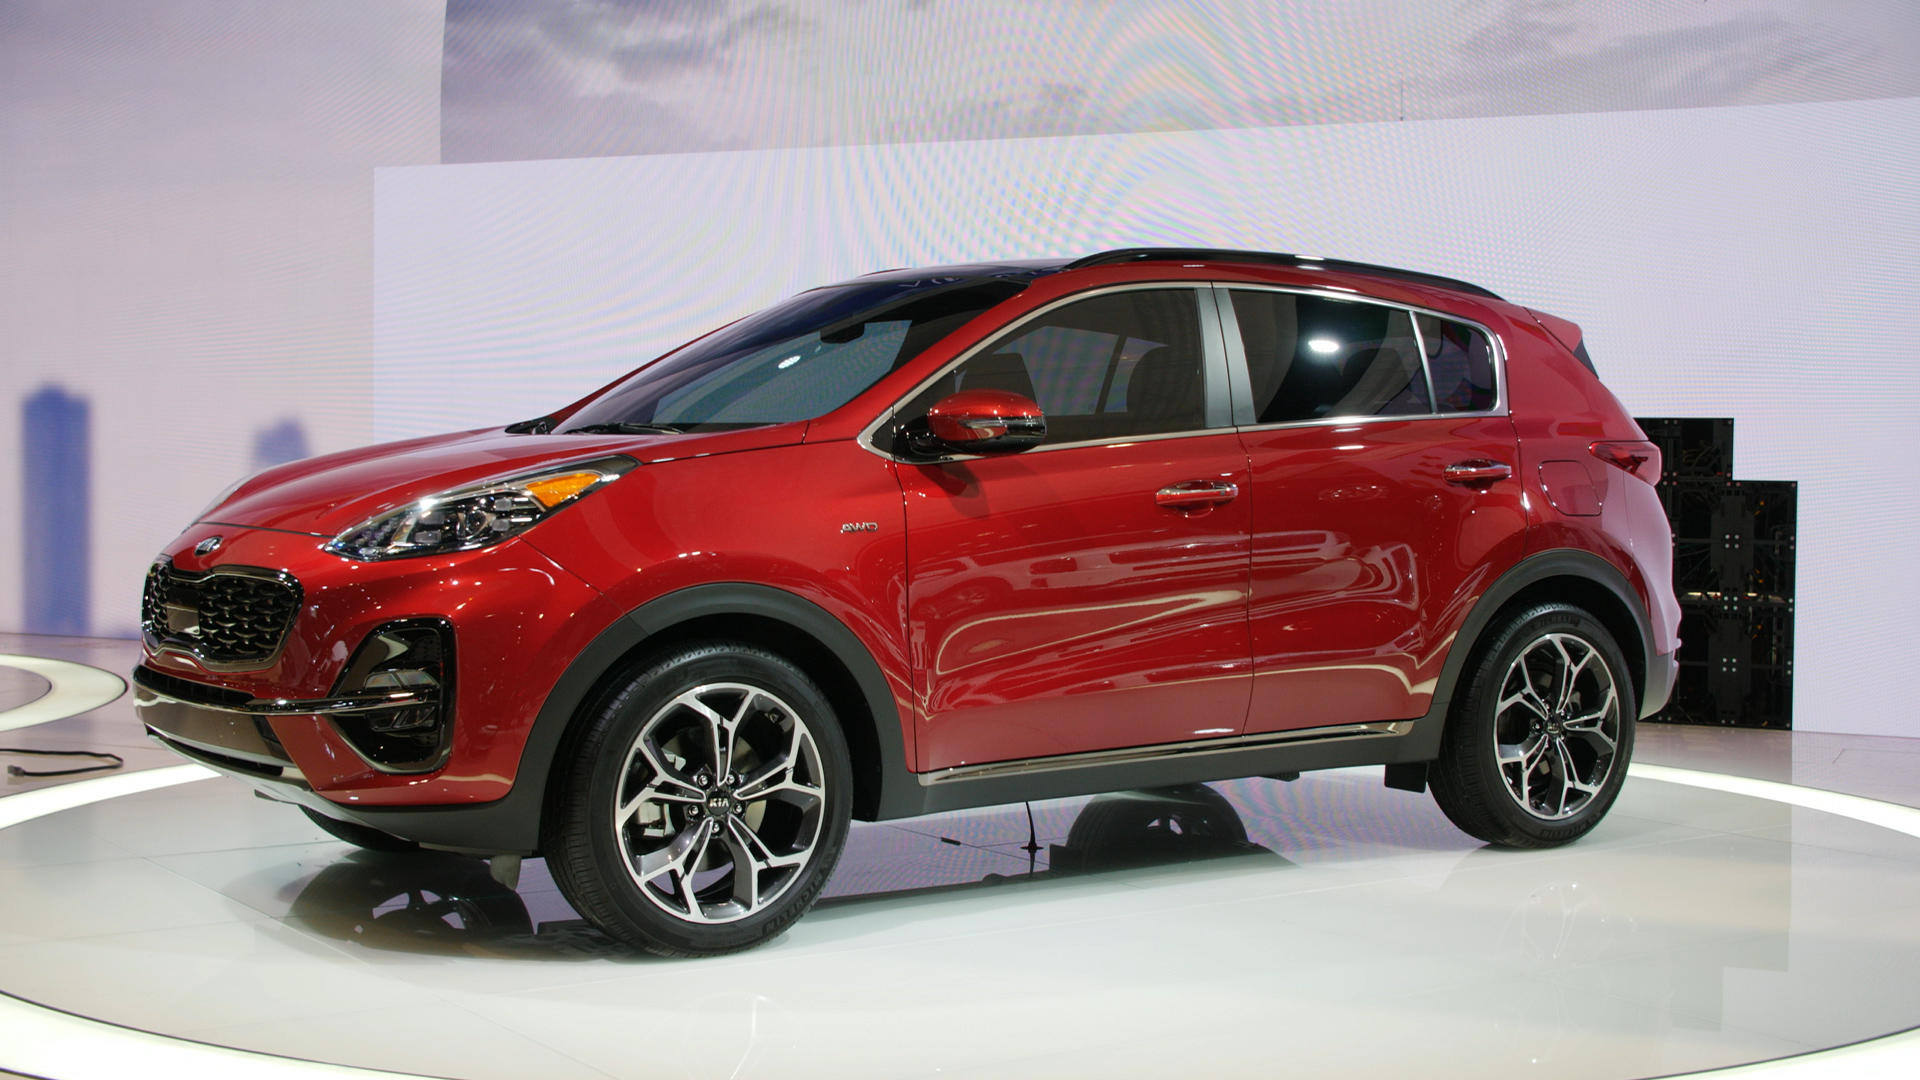 Video: 2020 Kia Sportage grows up for the Chicago Auto Show